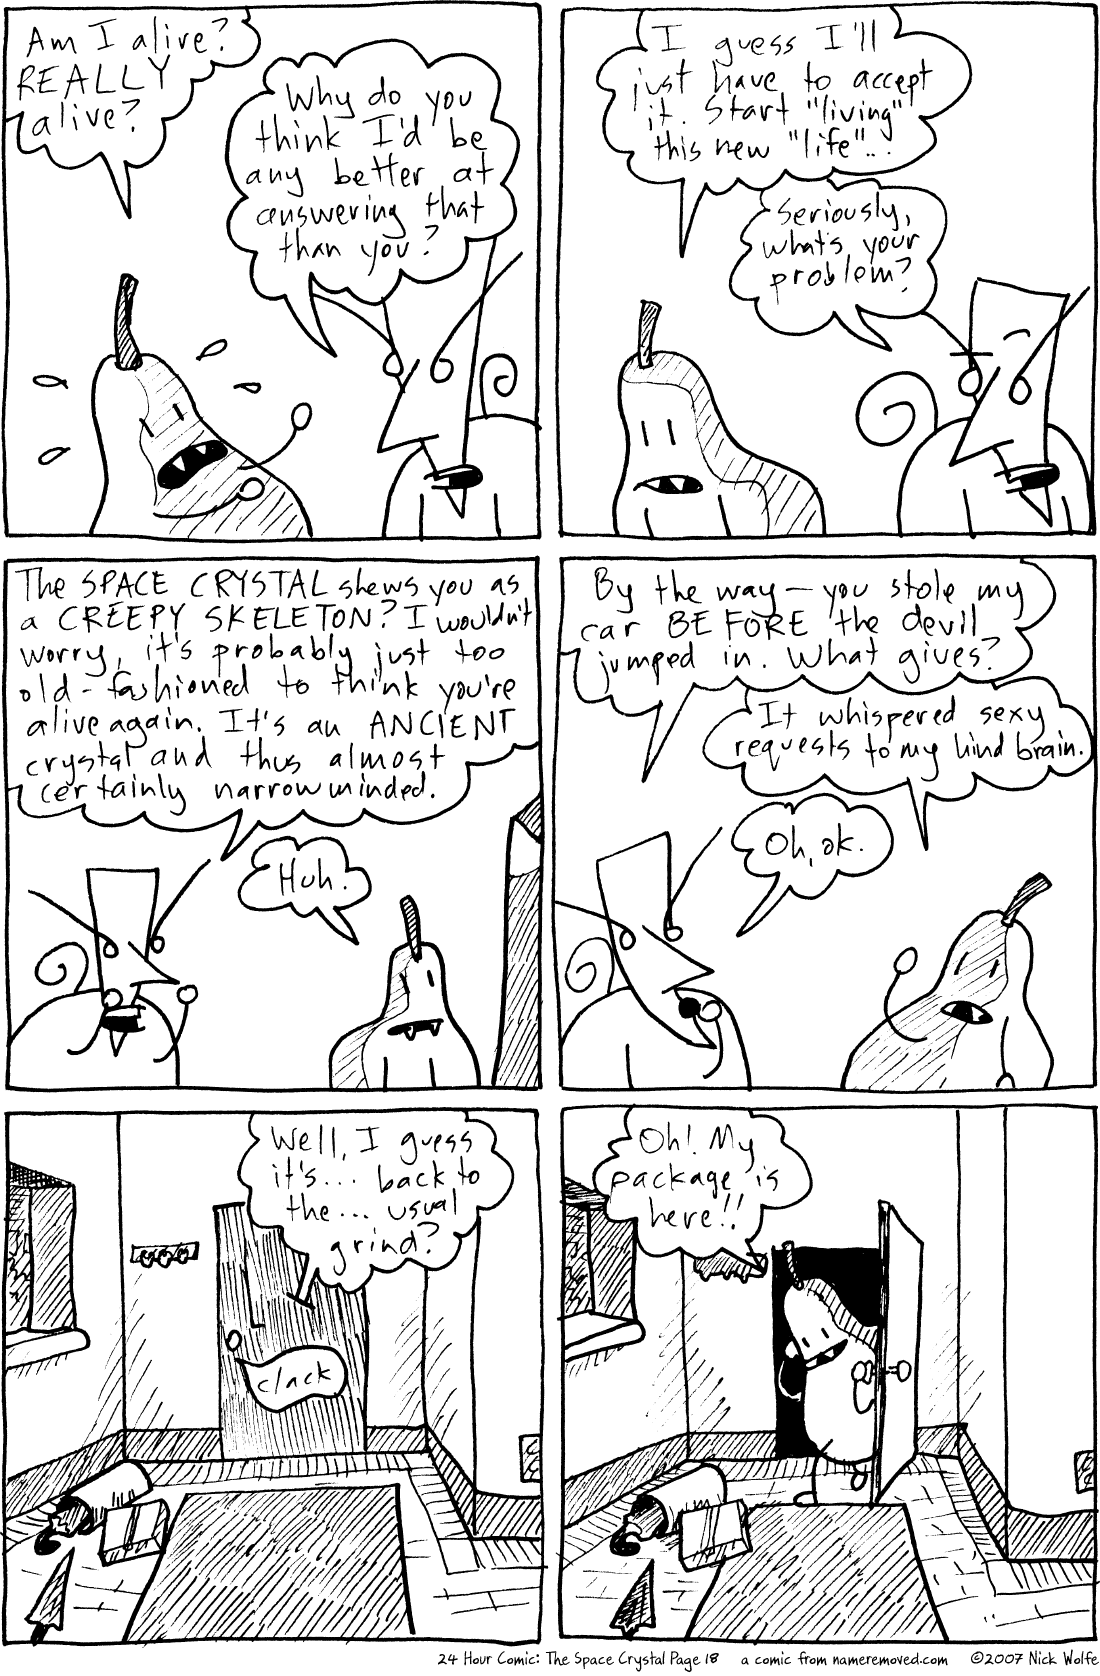 24 Hour Comic: The Space Crystal Page 18